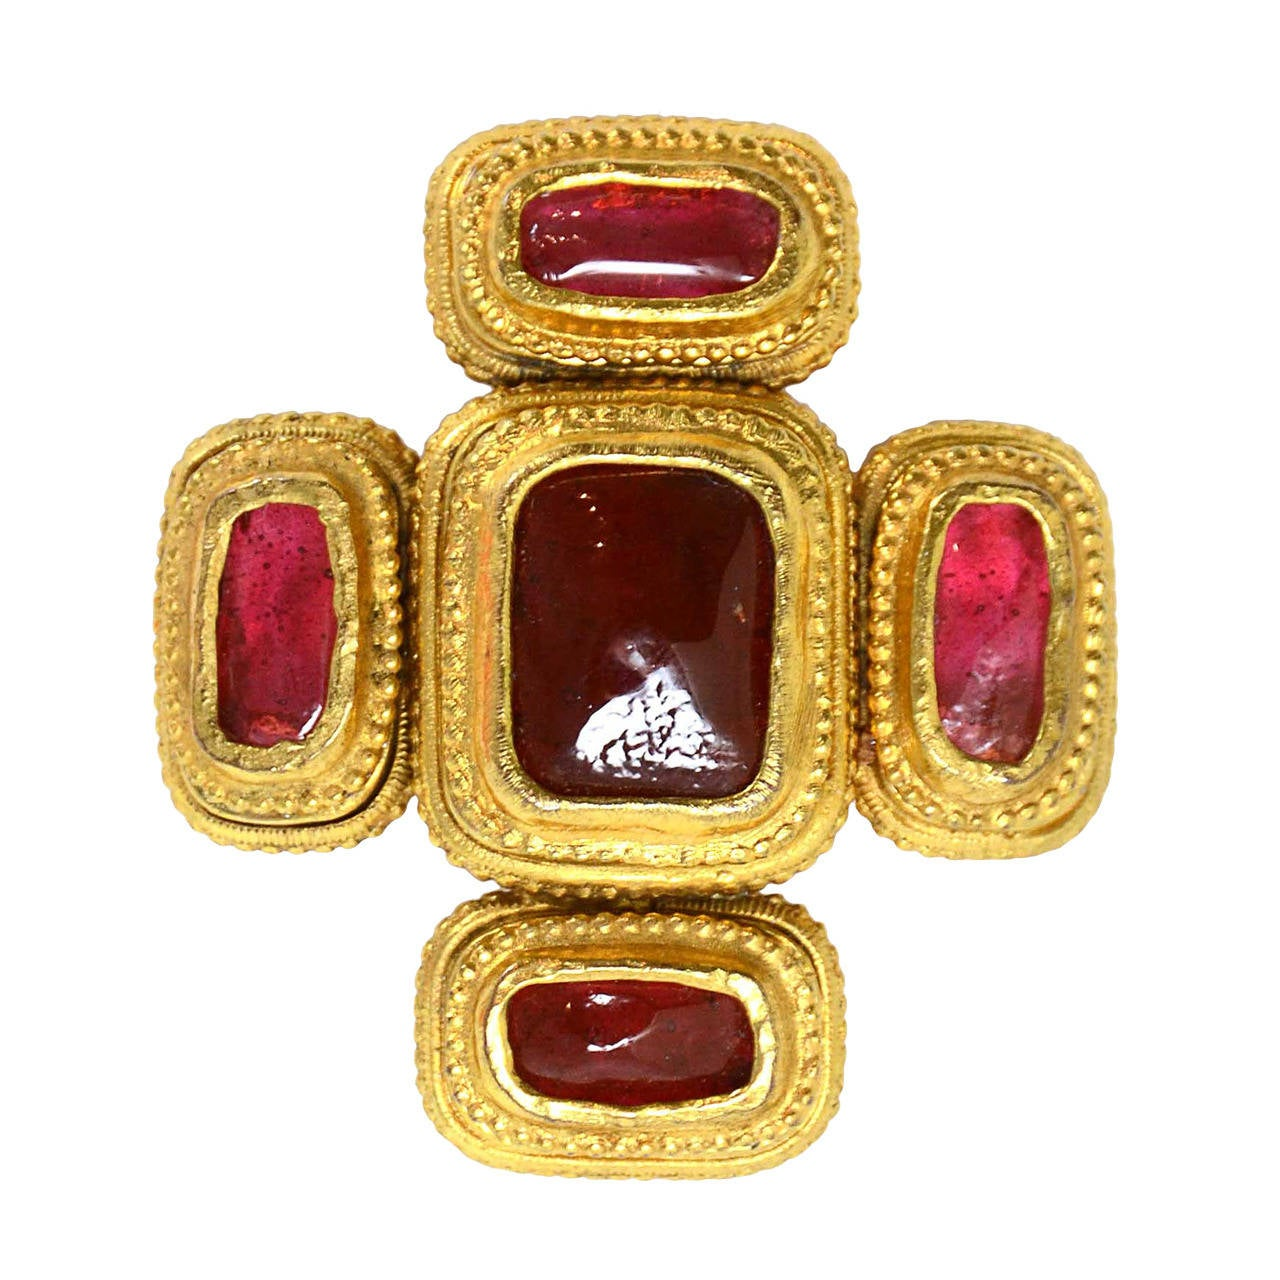 Chanel Vintage 70's80's Goldtone Pin And Red Gripoix. Burma Sapphire. Trends Engagement Rings. Gold Small Earrings. Calvin Klein Bracelet. Solitare Diamond. Edwardian Wedding Rings. Elegant Watches. Fashionable Necklace